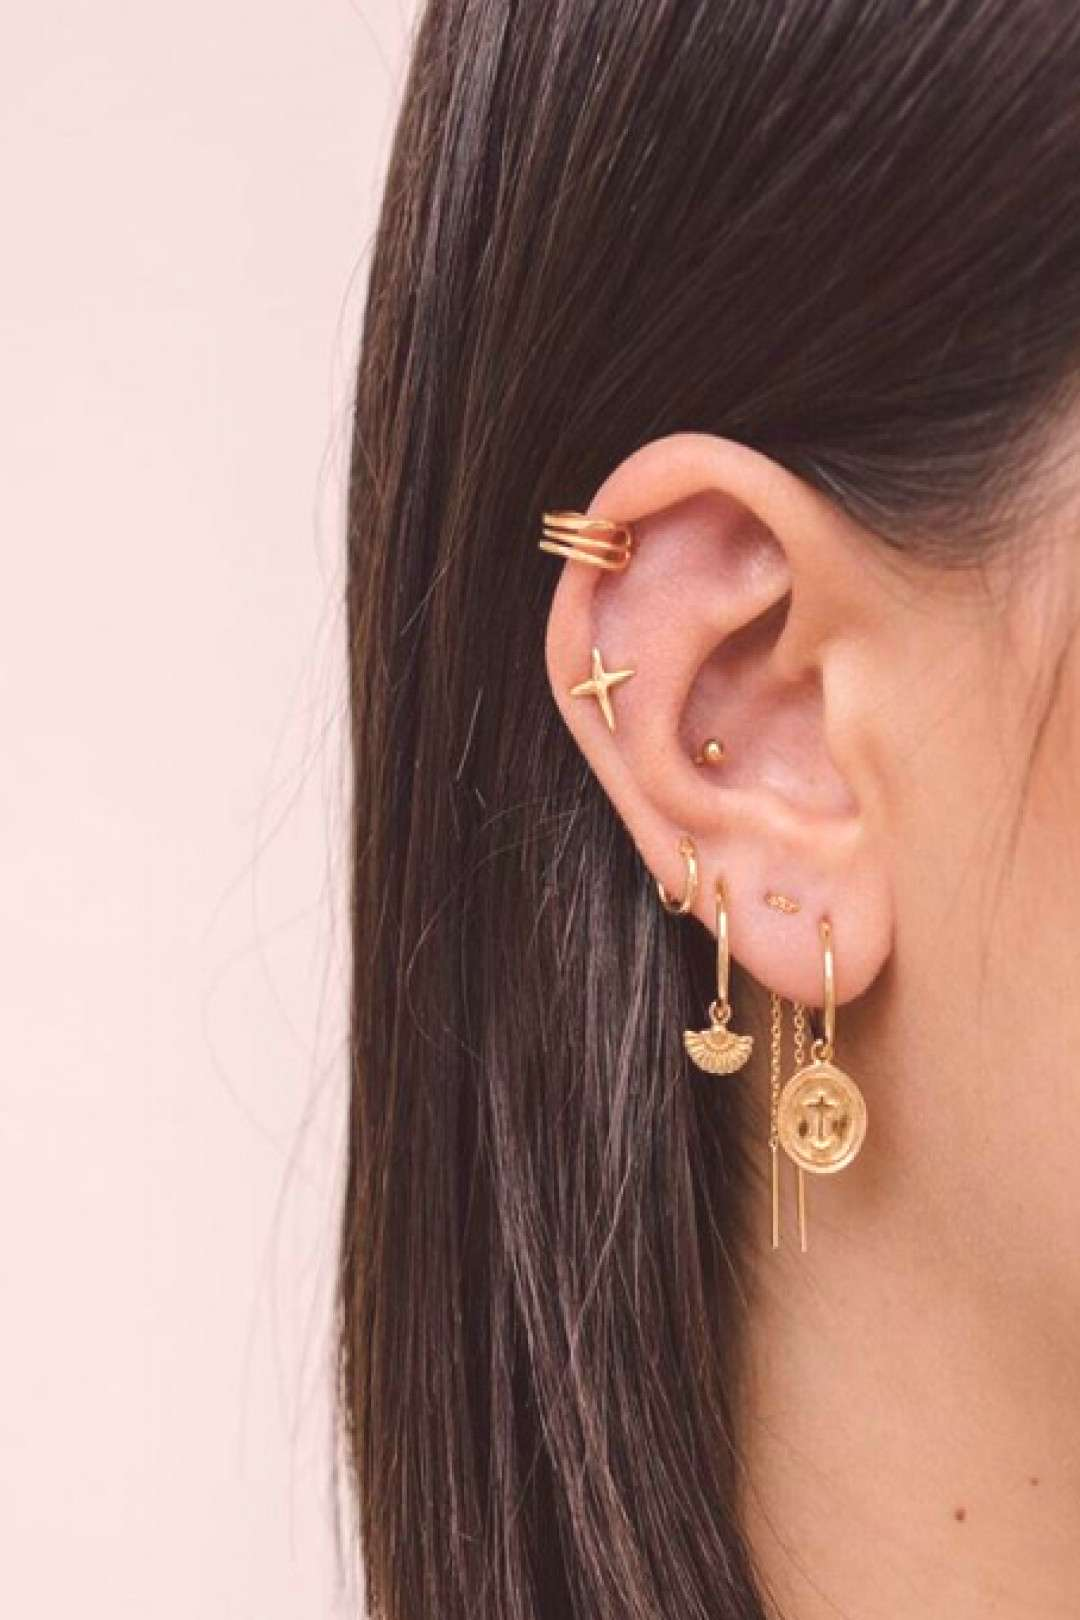 The ear holes Our editors are coming in autumn - The ear holes that ... - The ear holes Our editor